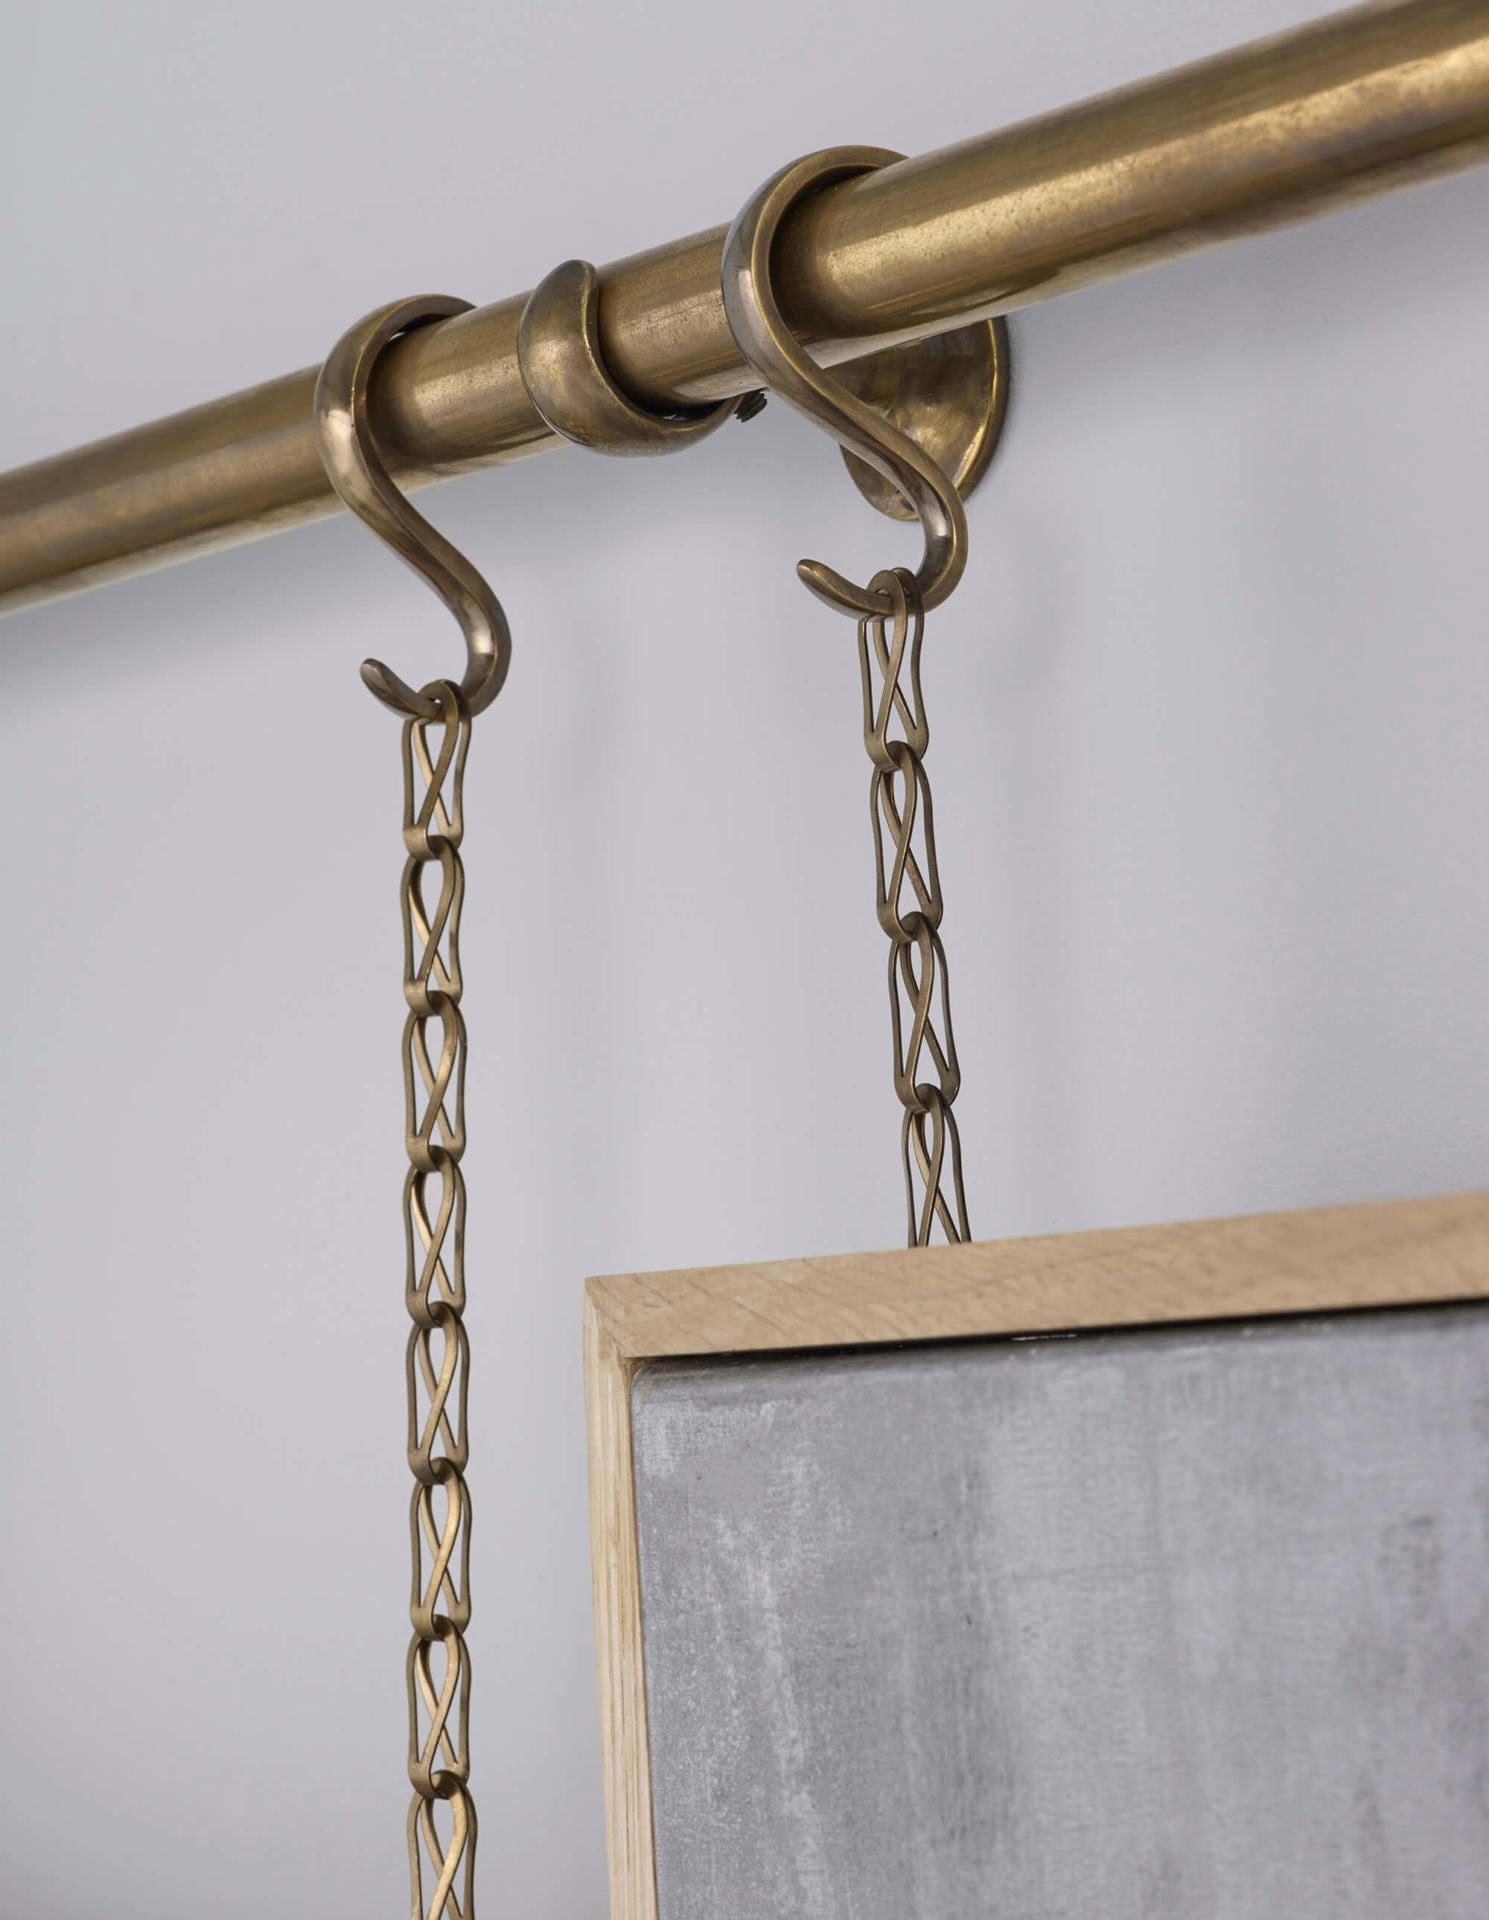 art hanging with brass picture rail and chain